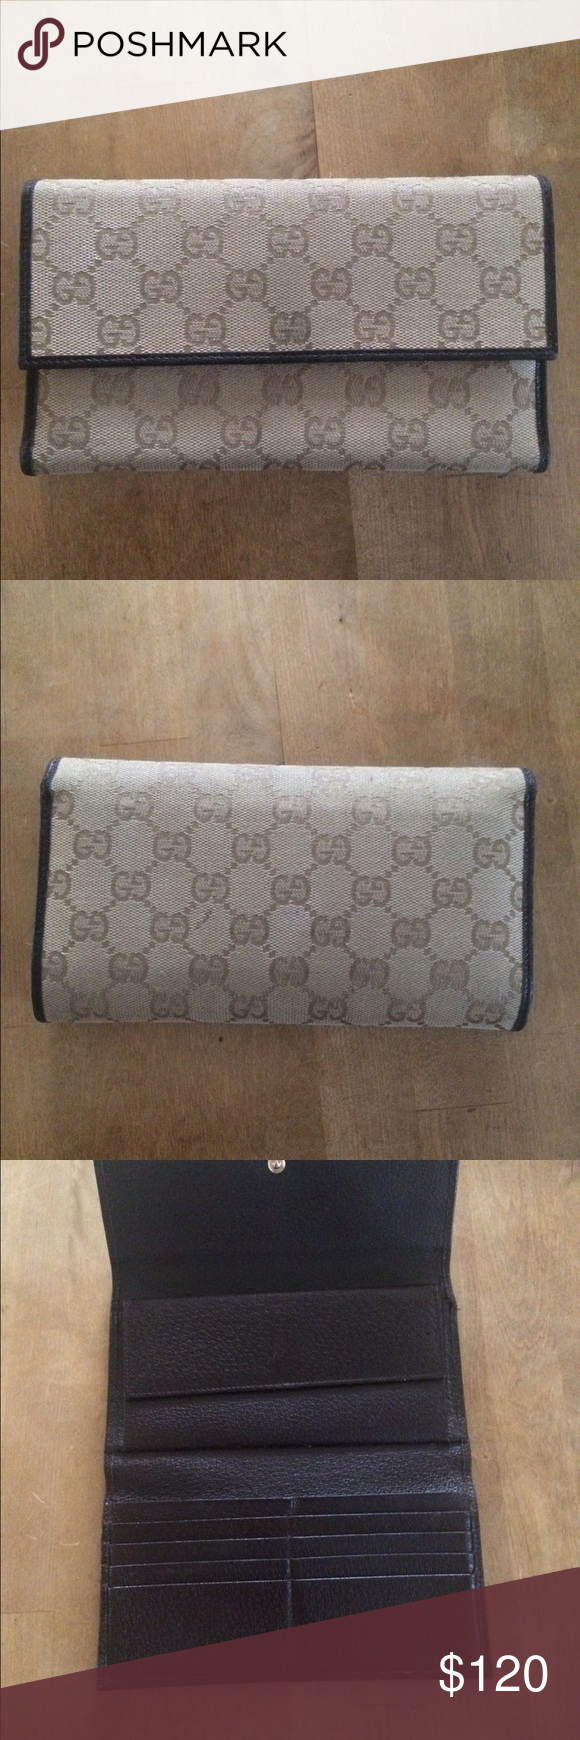 90e16dc3e55 Gucci women s wallet This is a beautiful woman s Gucci trifold wallet. It  has eight credit